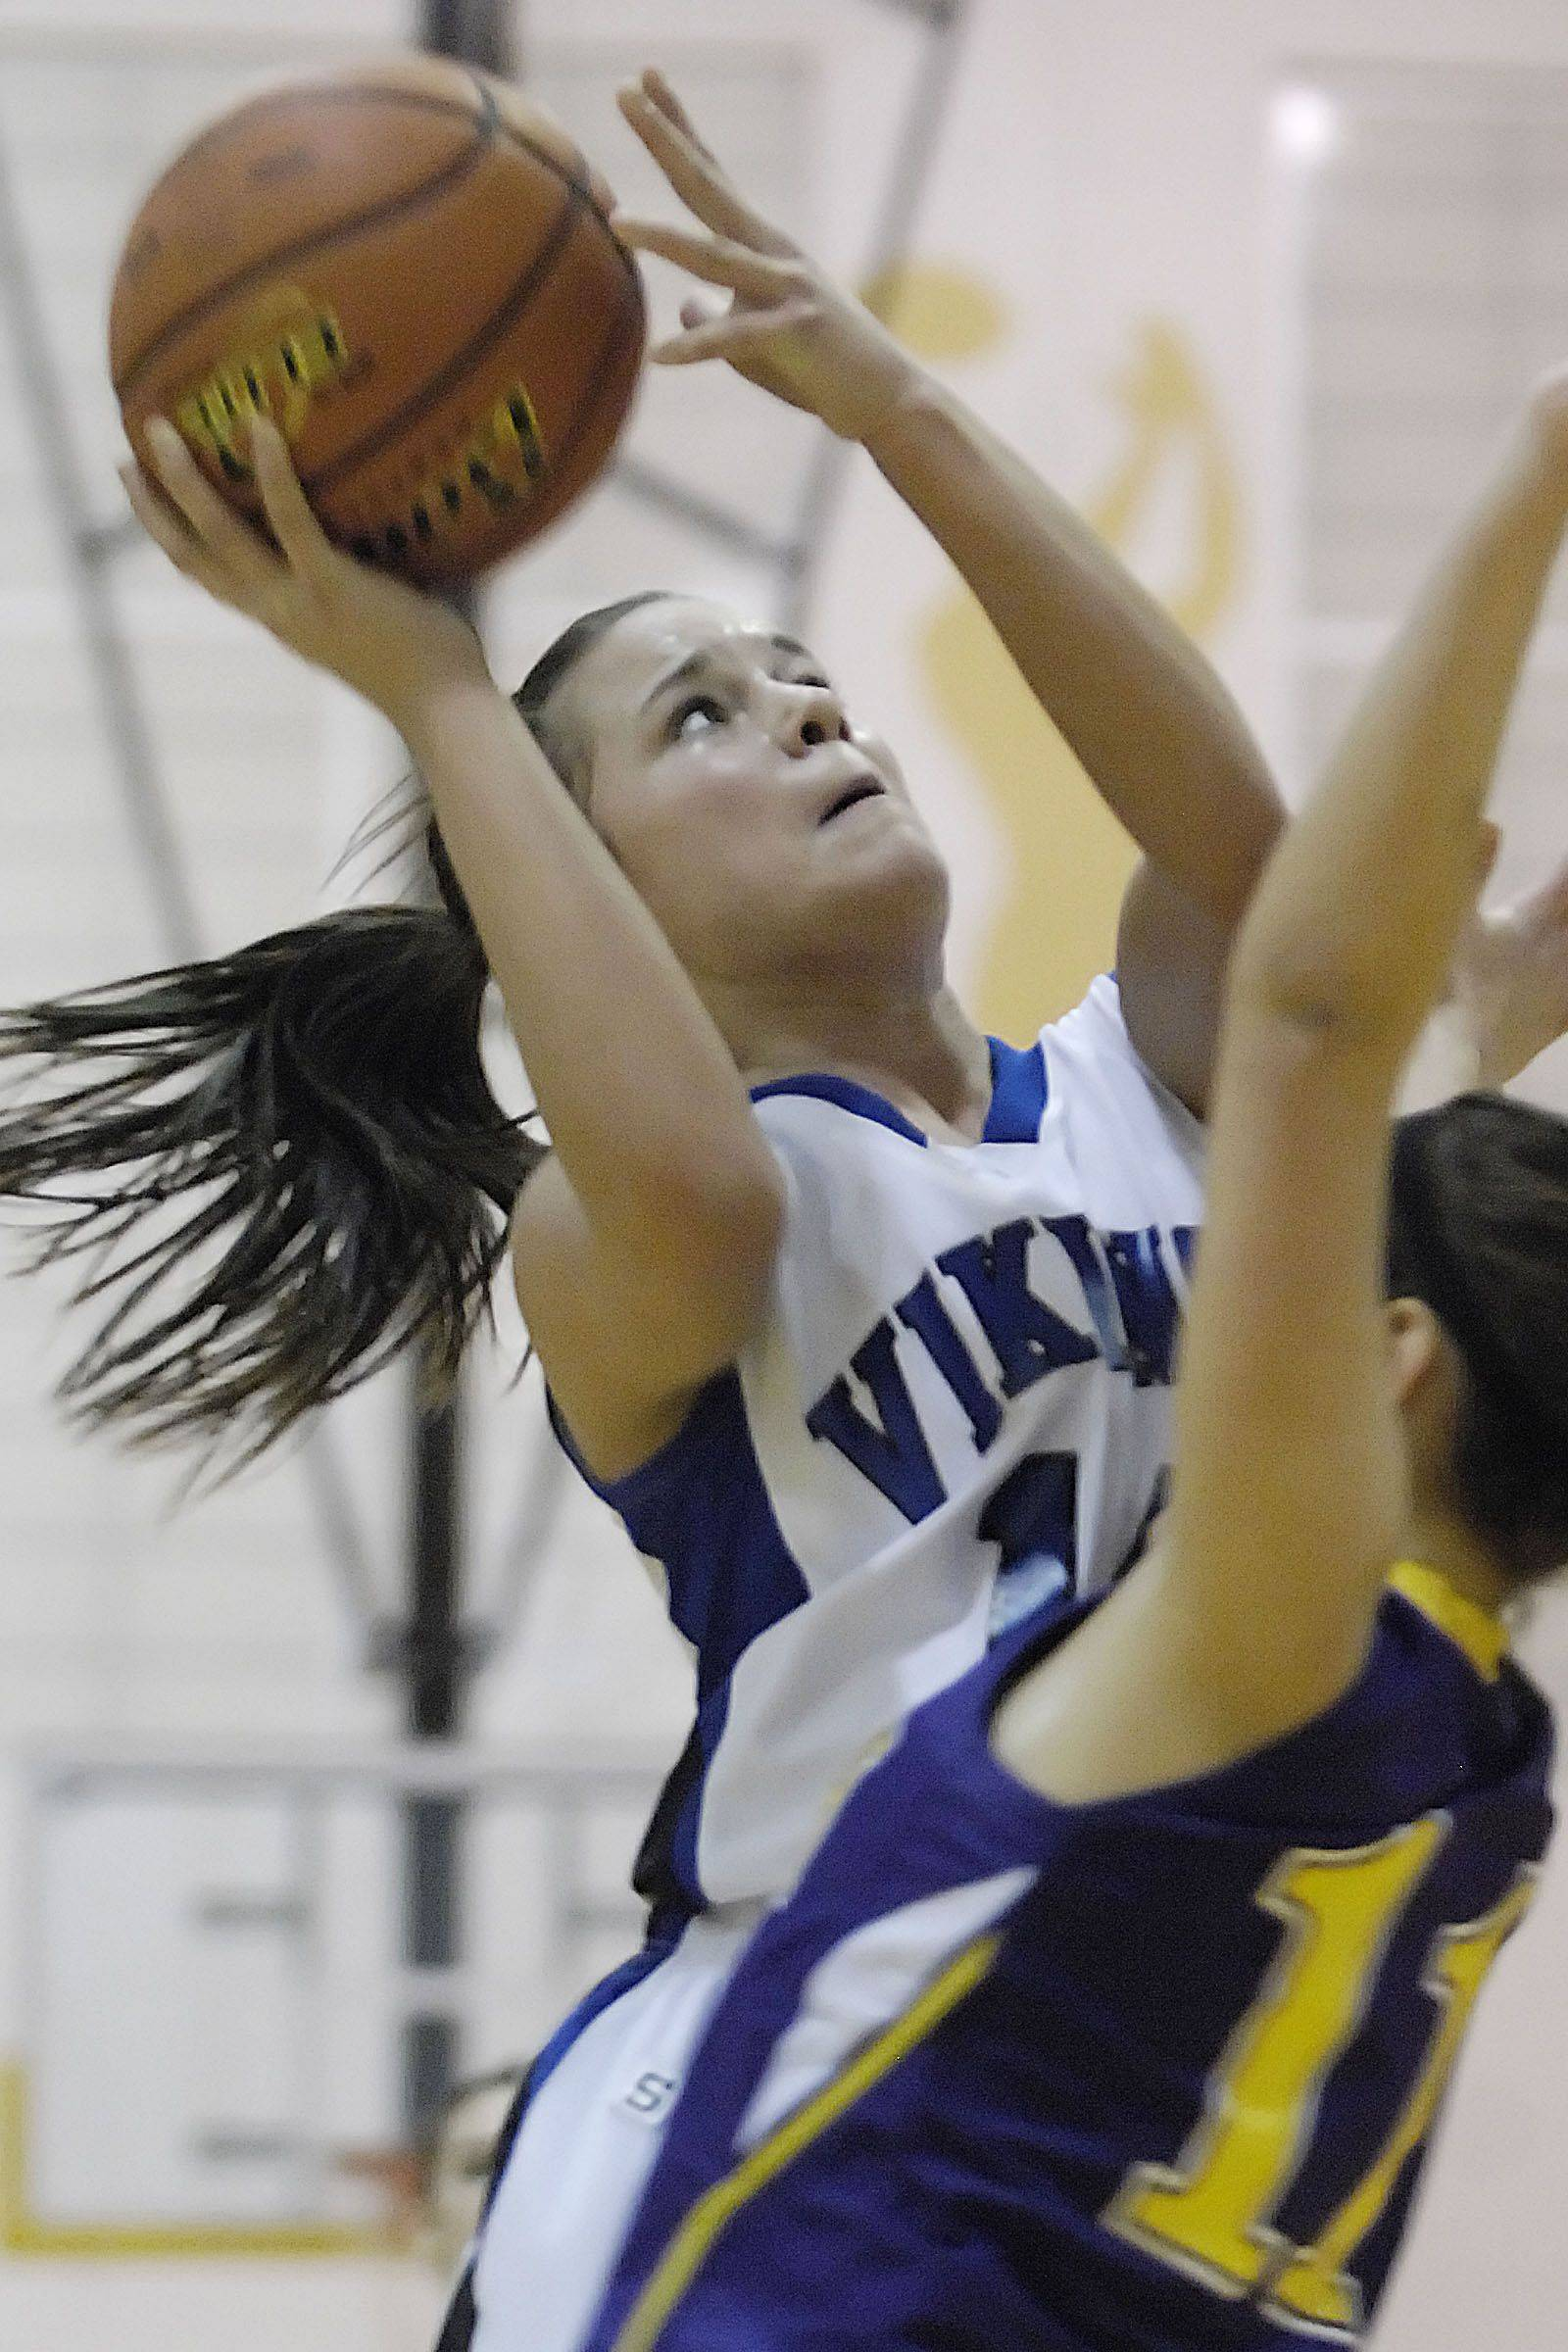 Geneva's Kat Yelle scores over Hononegah's Meg Macy Tuesday in the sectional semifinal game in Algonquin.